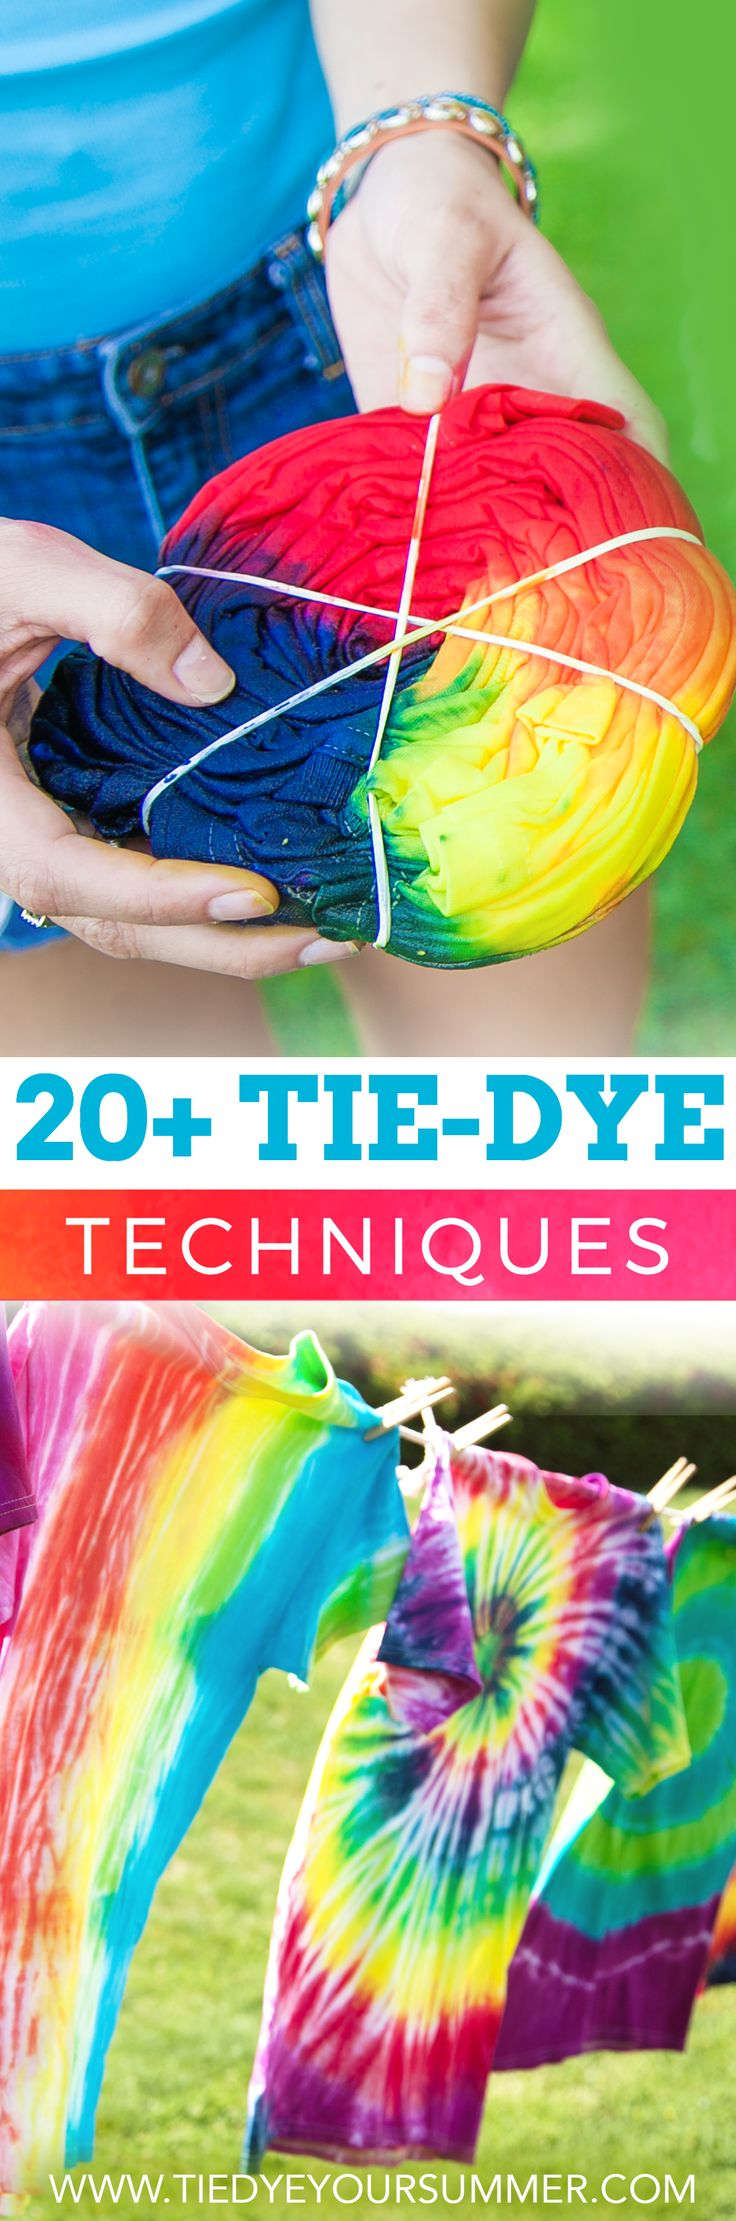 Tie Dyeing is the perfect summer activity you can do at home in the backyard. So many options and patterns to make, the possibilities are endless!